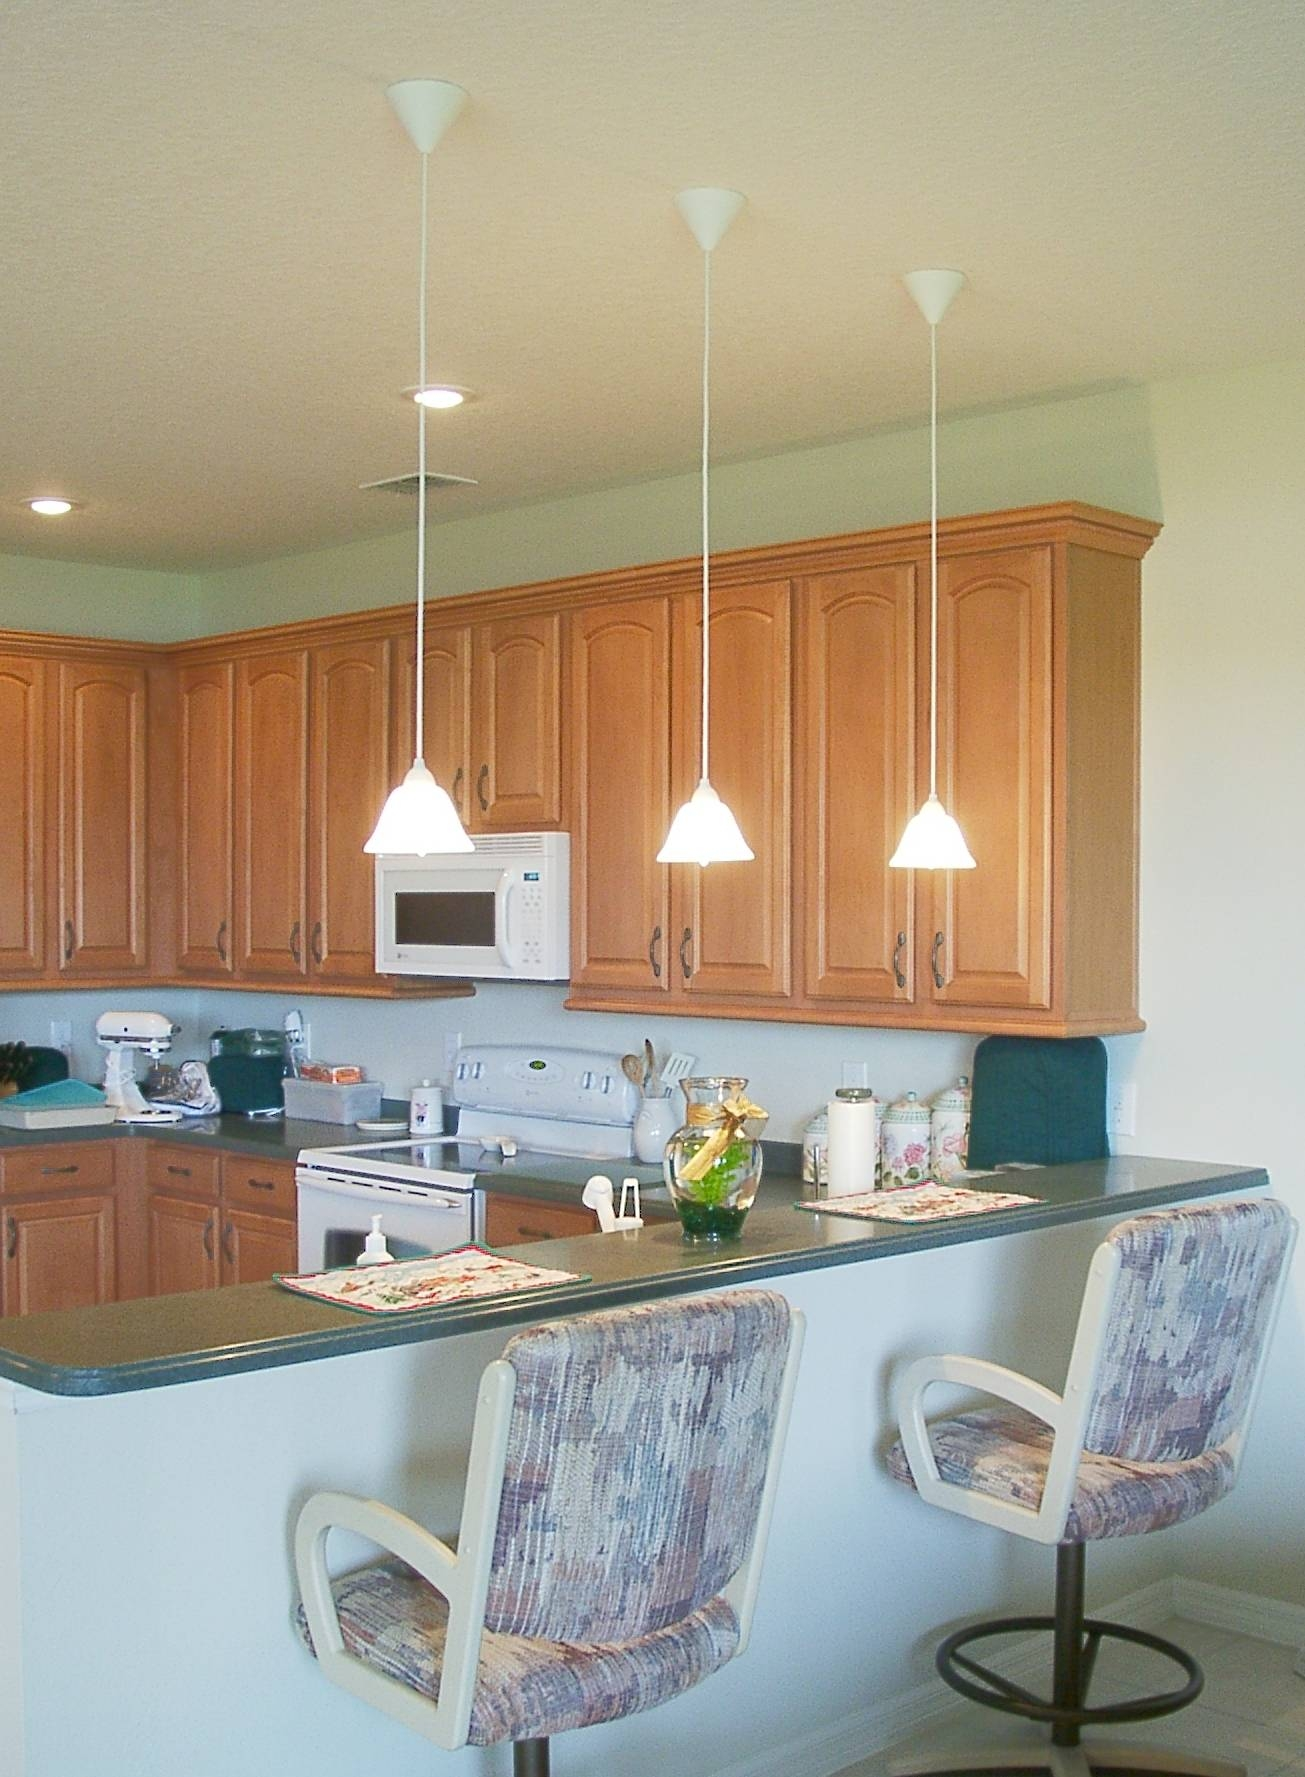 Best Collection Of Three Lights Pendant For Kitchen - Three light pendant kitchen